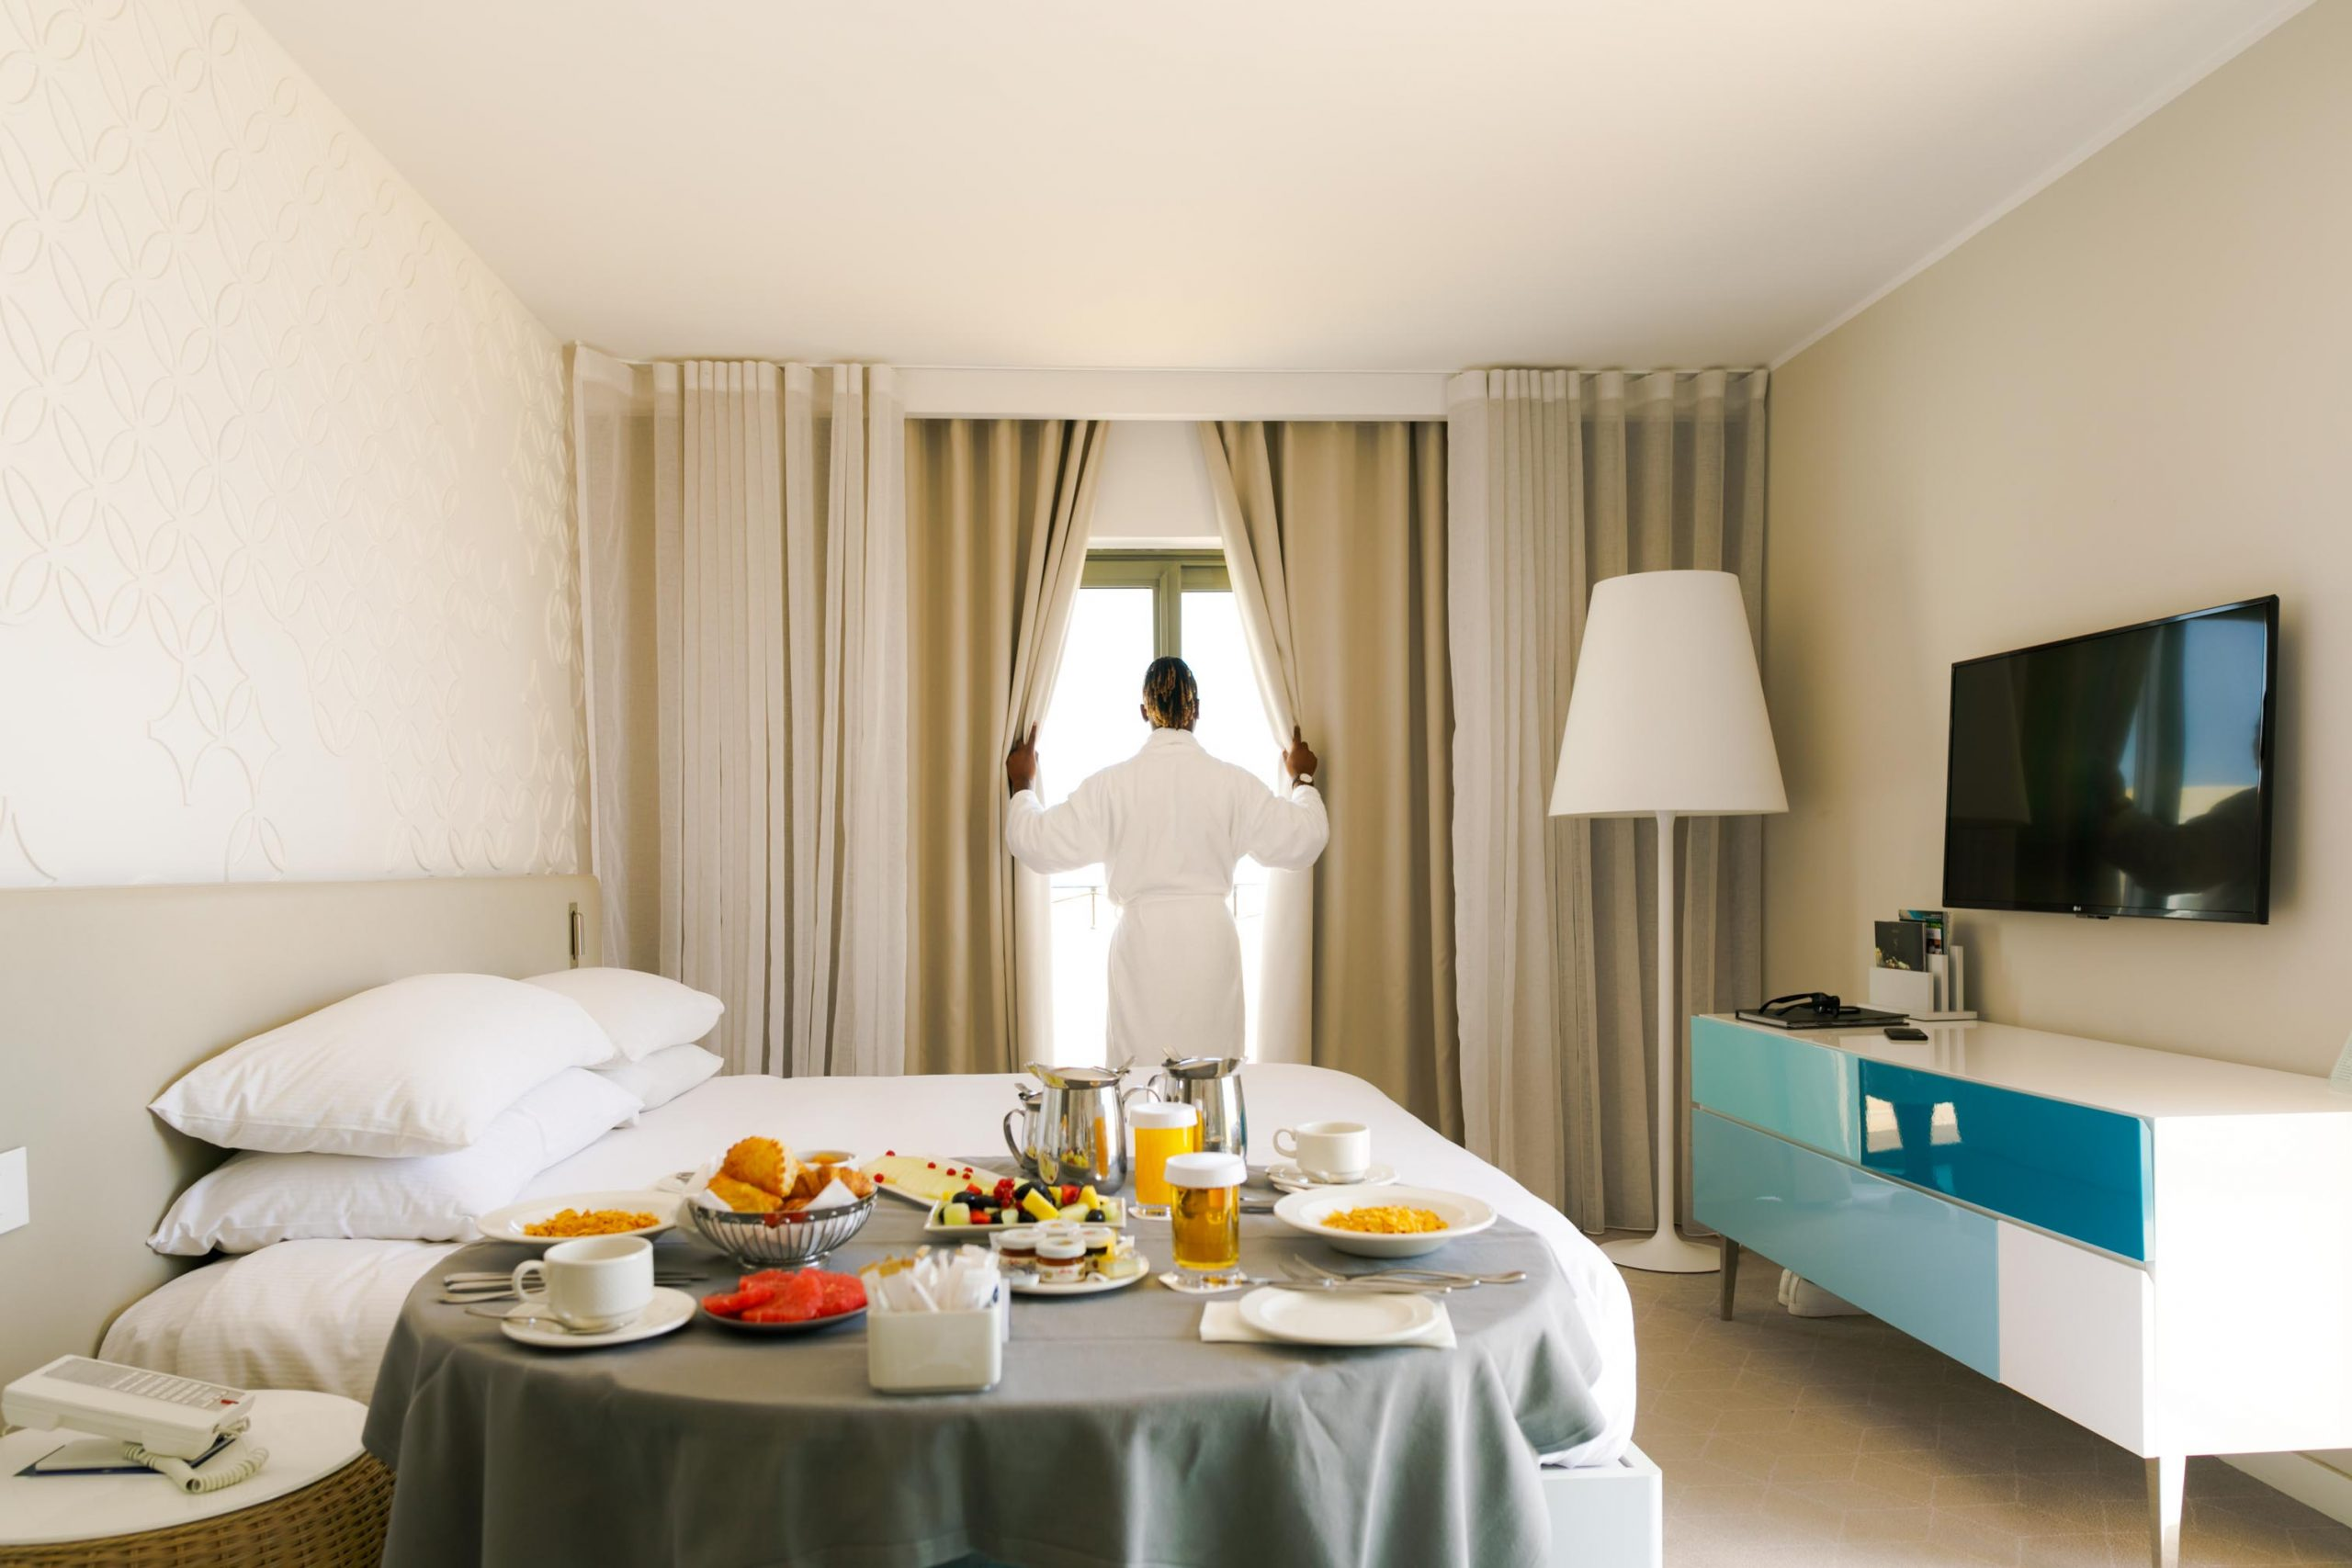 luxury hotel review hilton hilton bedroom scaled